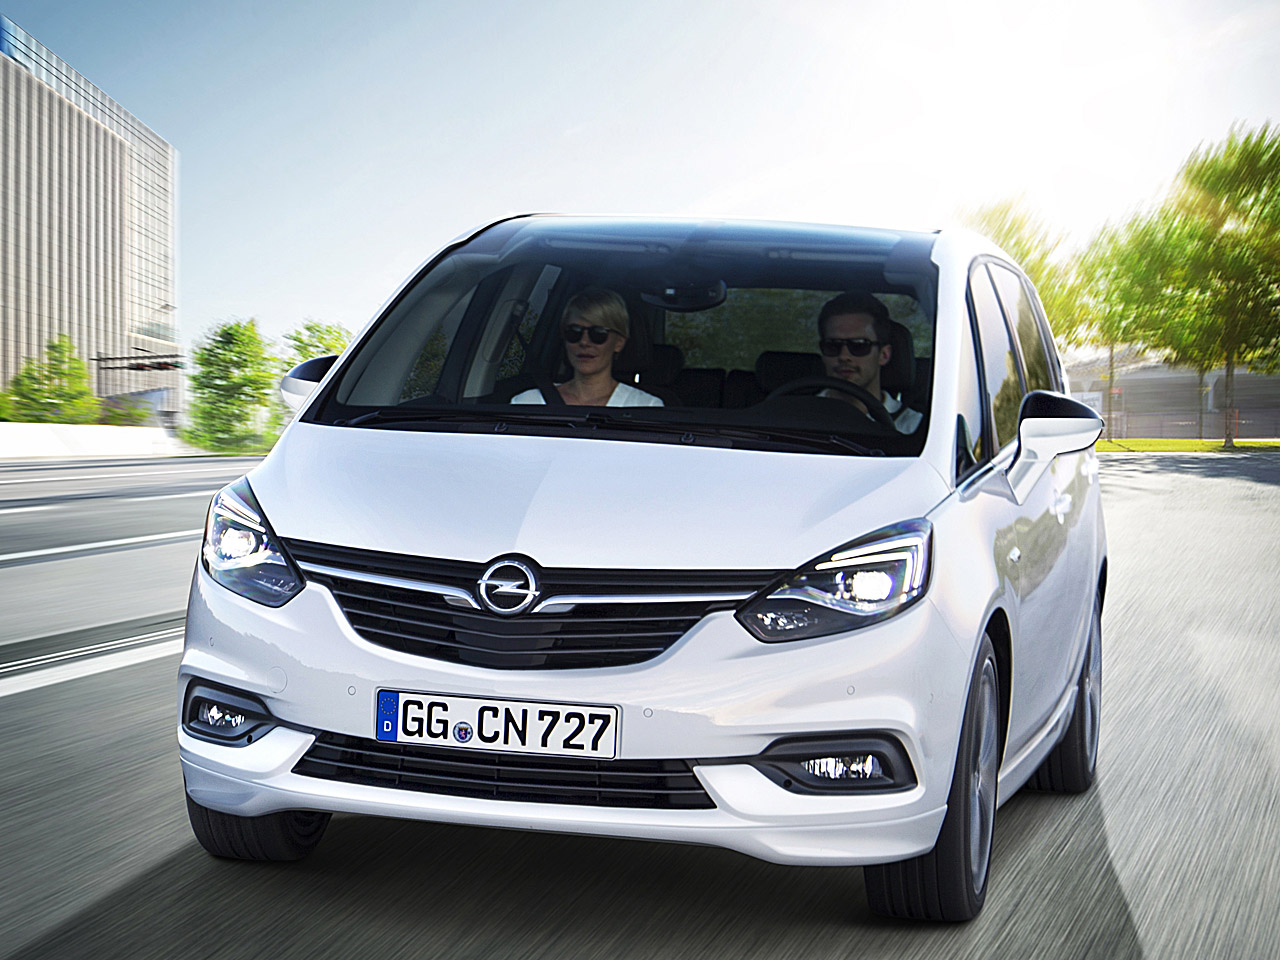 opel zafira facelift 2016 preis update. Black Bedroom Furniture Sets. Home Design Ideas